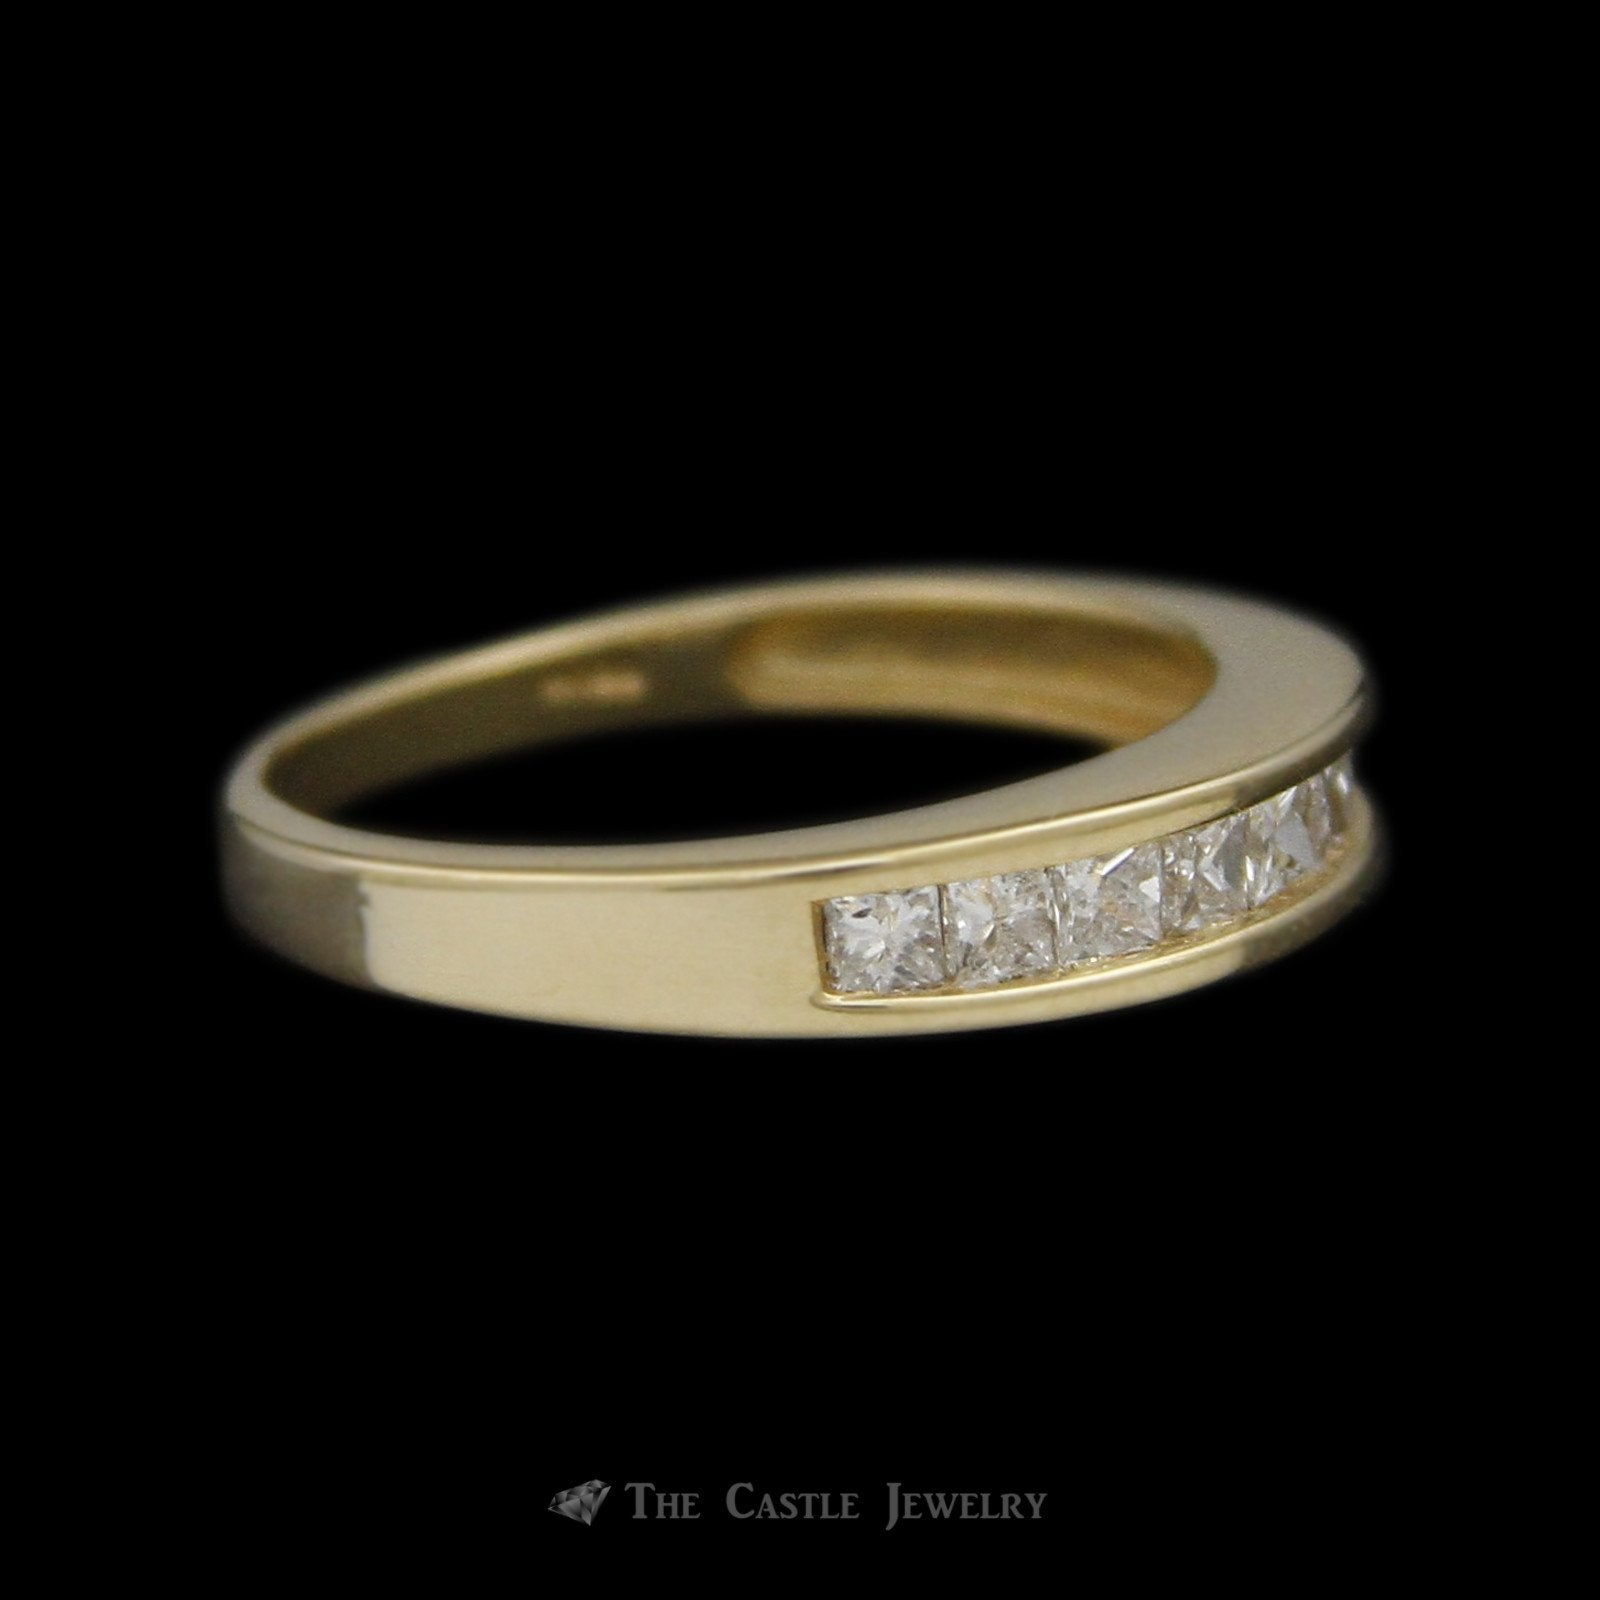 Channel Set Princess Cut Diamond Wedding Band 1/2cttw in 14K Yellow Gold-2